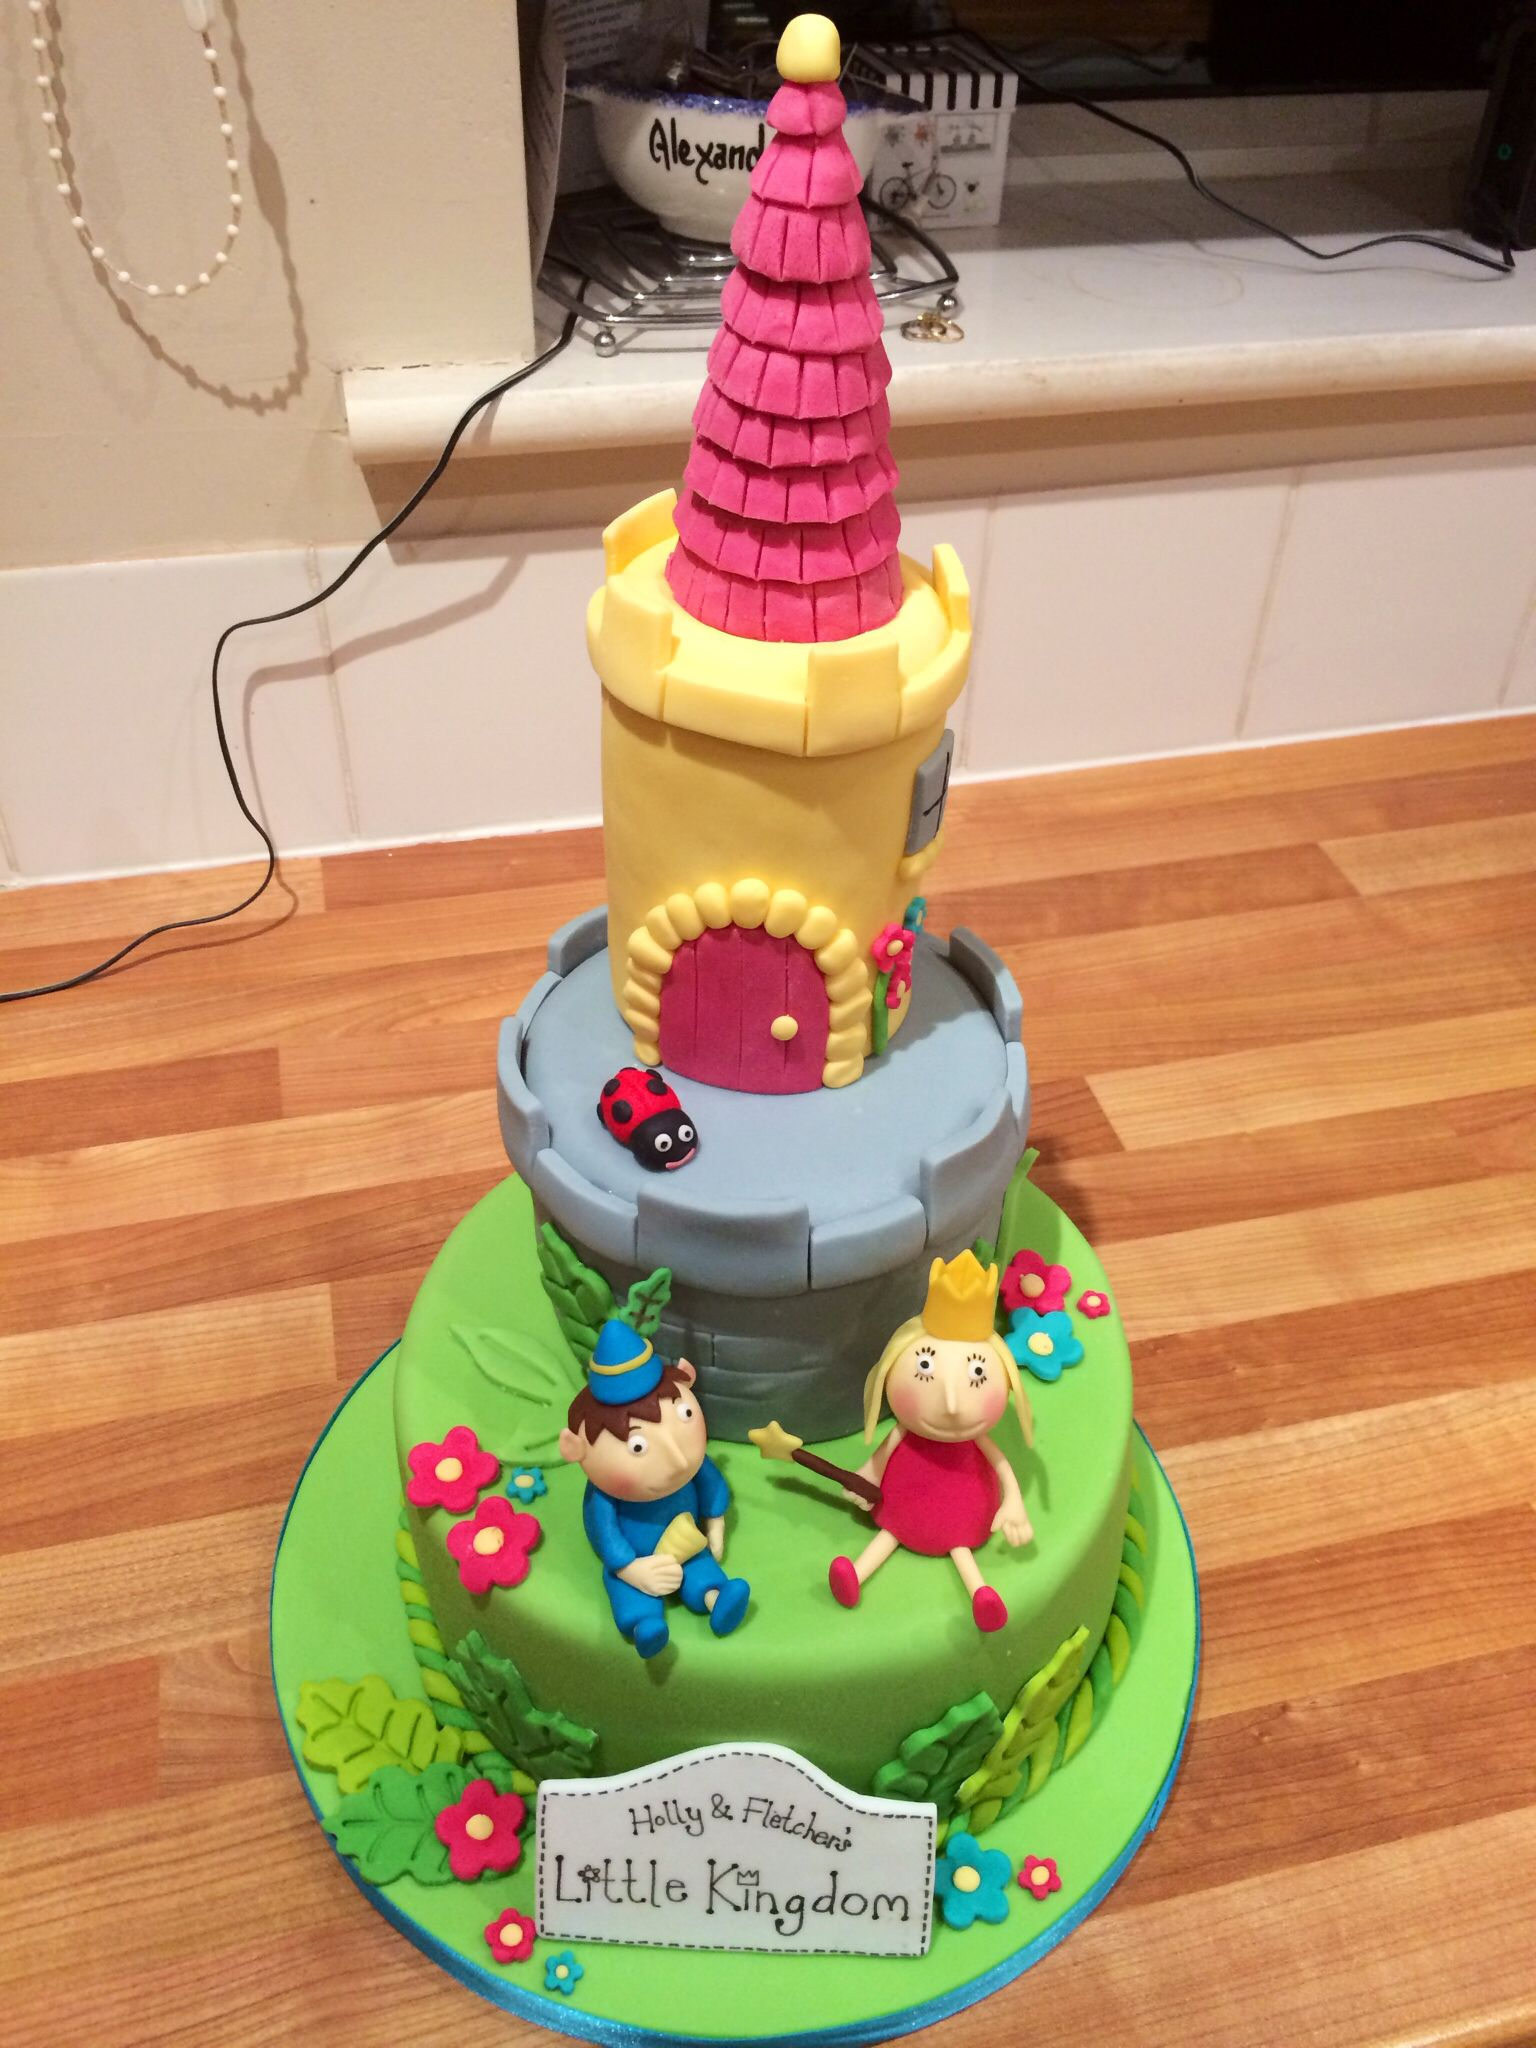 Ben and Holly's little kingdom cake with gumpaste figures